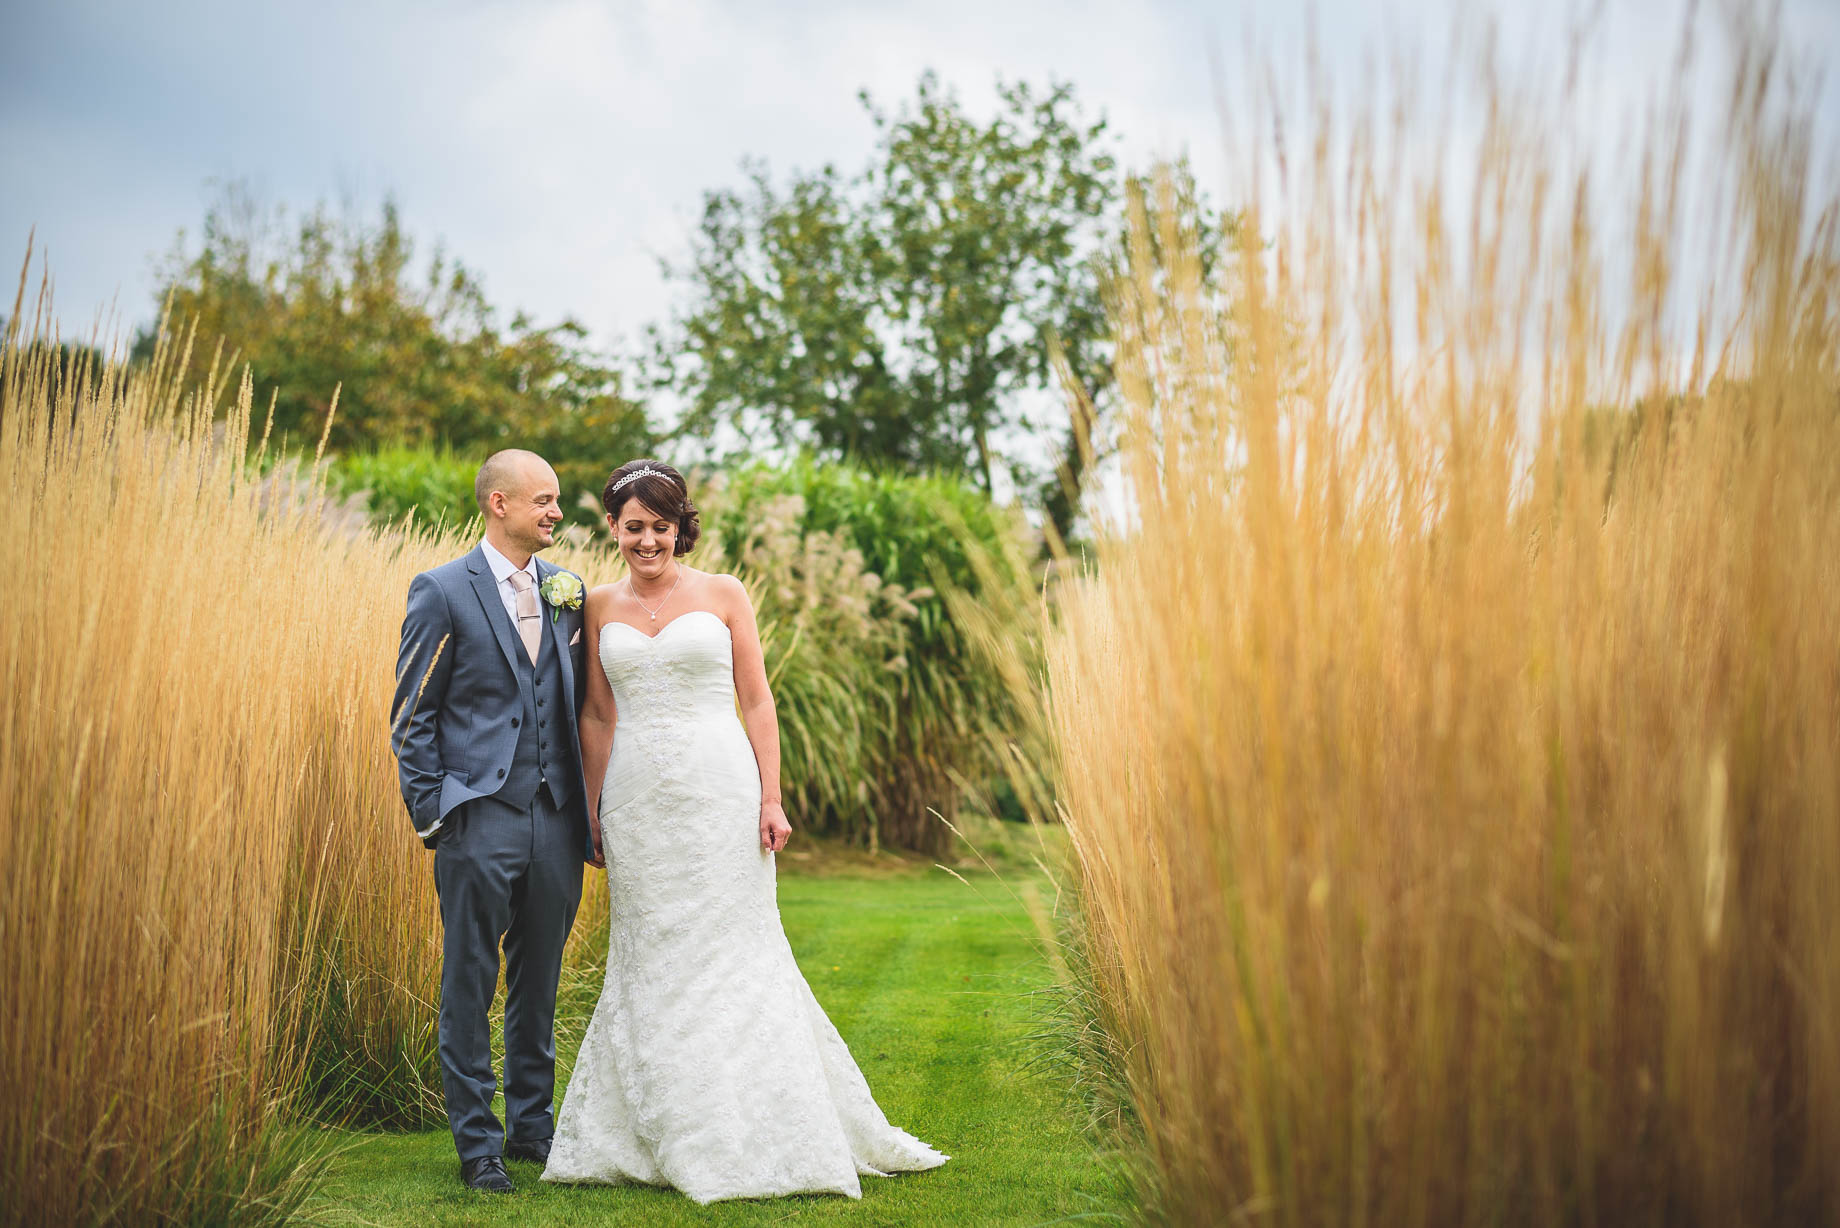 Bury Court Barn wedding photography - Guy Collier Photography - Karen and John (101 of 166)